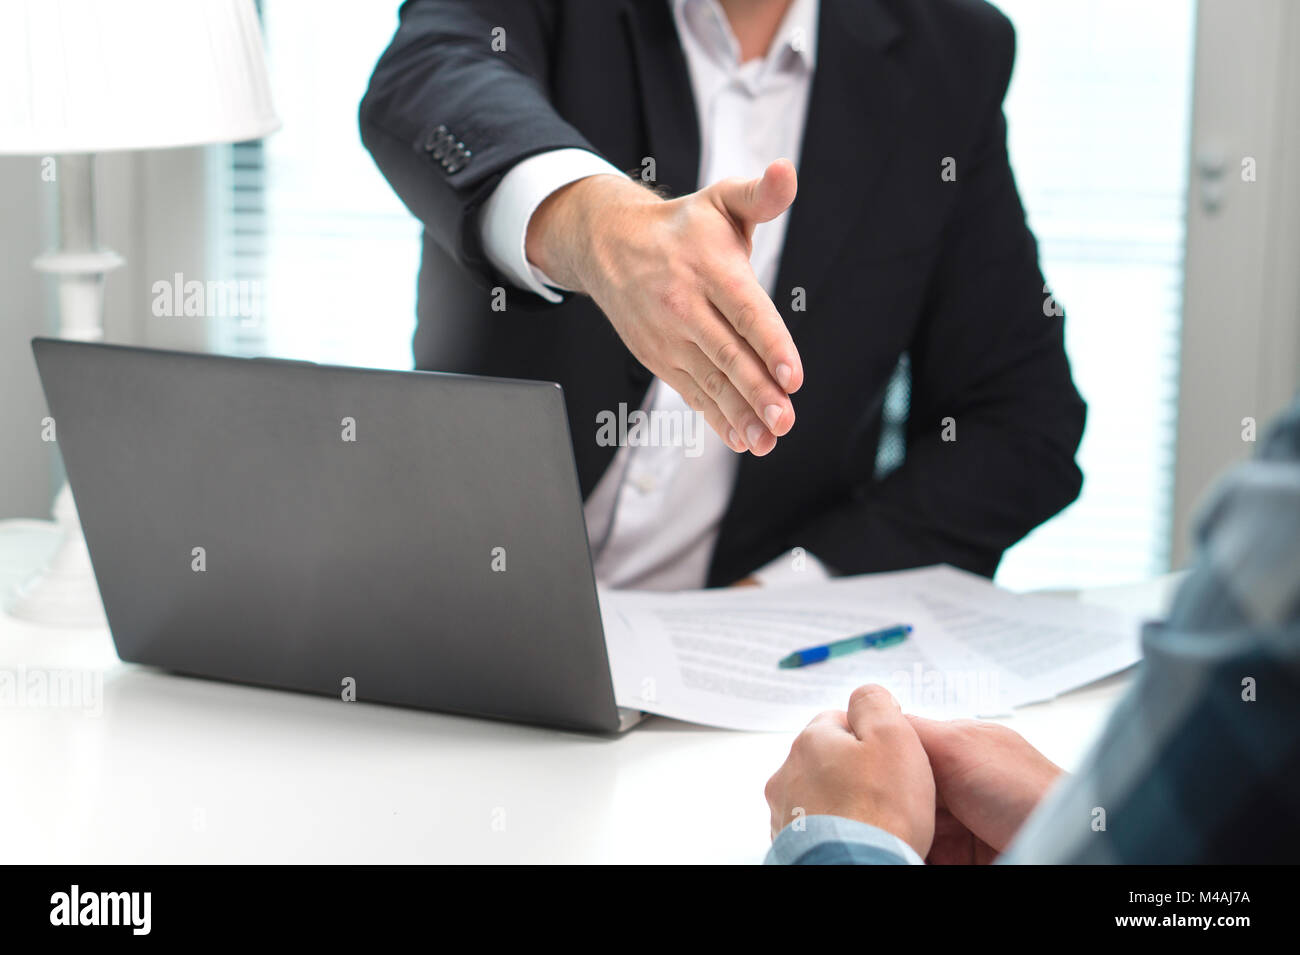 Business man offer and give hand for handshake in office. Successful job interview. Apply for loan in bank. Salesman, - Stock Image